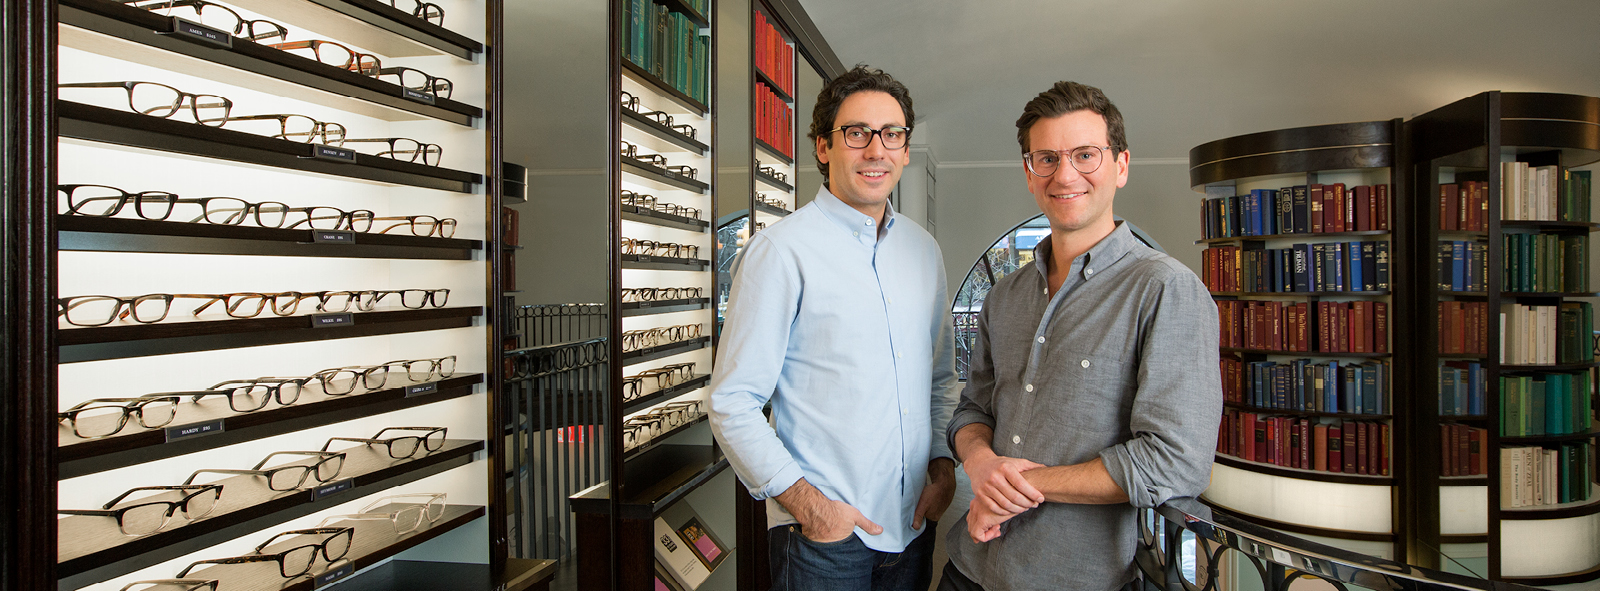 Image of First Republic Entrepreneurs client(s) Neil Blumenthal and Dave Gilboa